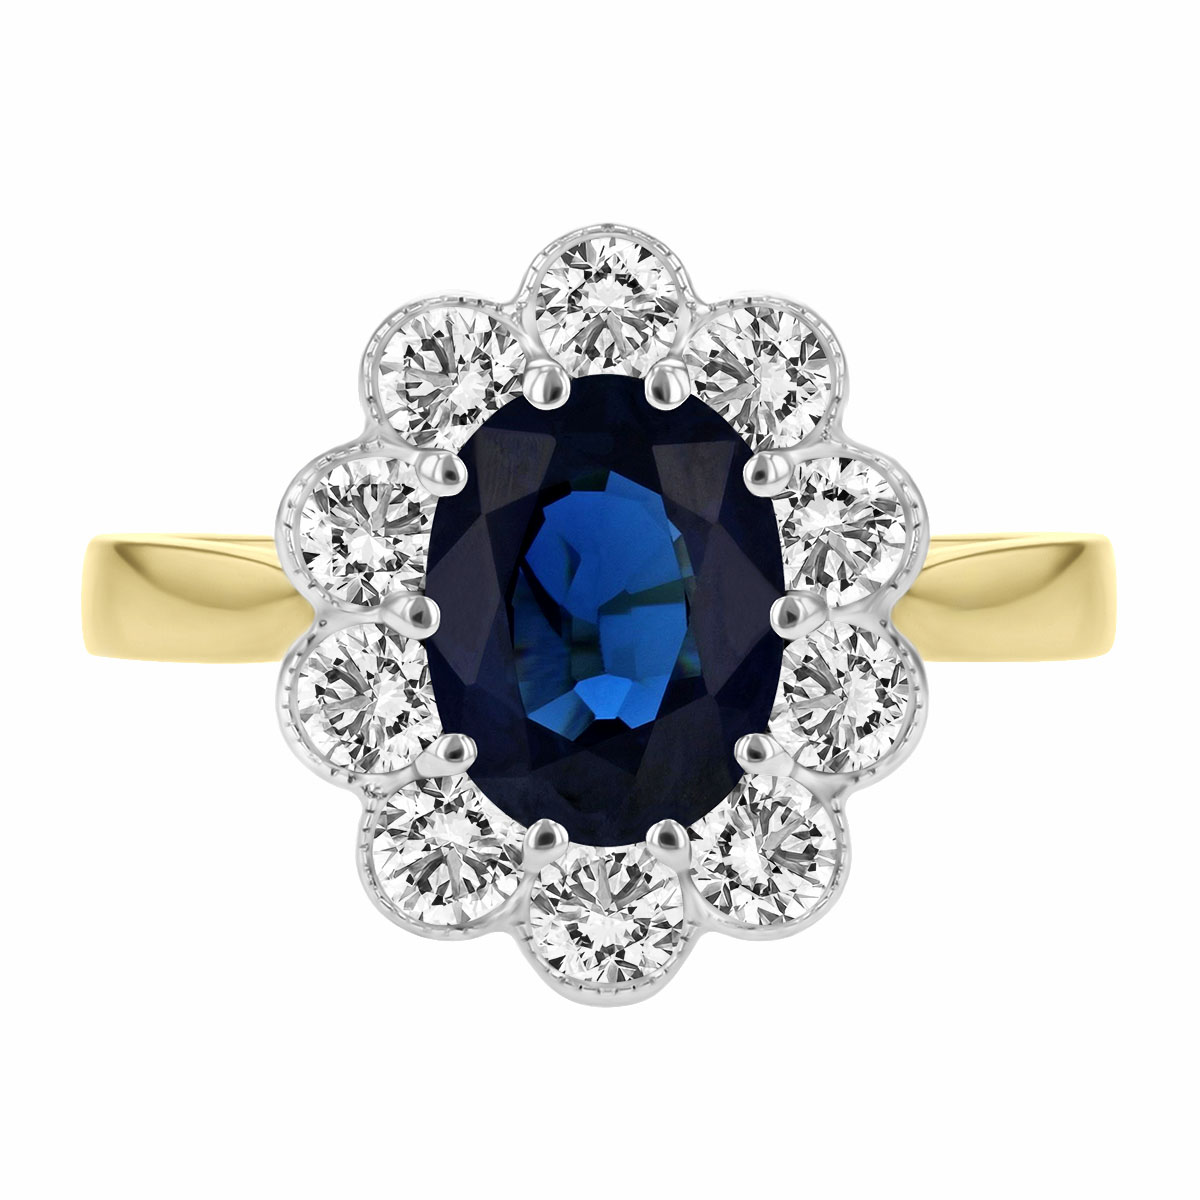 1.92ct Oval Cut Sapphire and Diamond Cluster Ring |  18K Yellow Gold